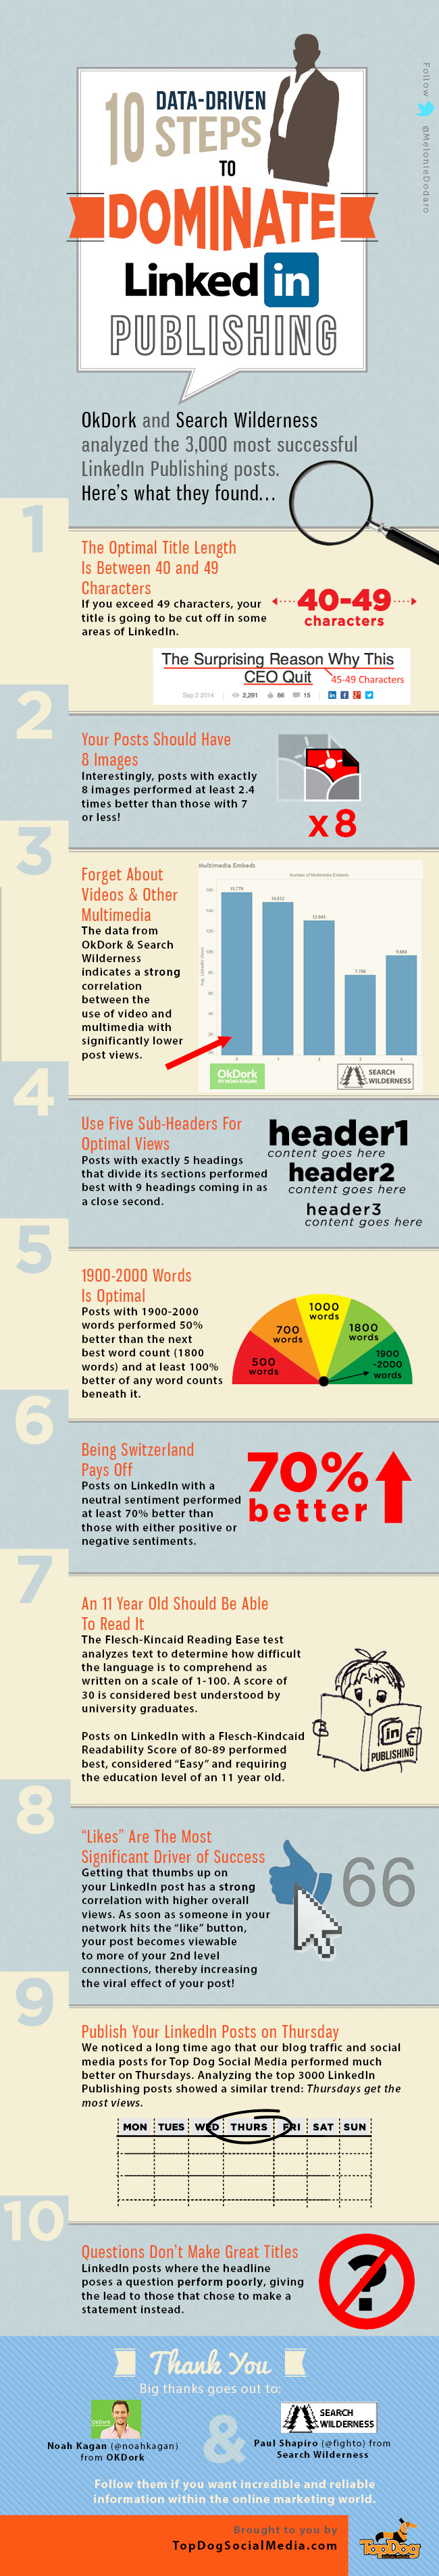 tips for writing great linkedin posts, linkedin  infographic